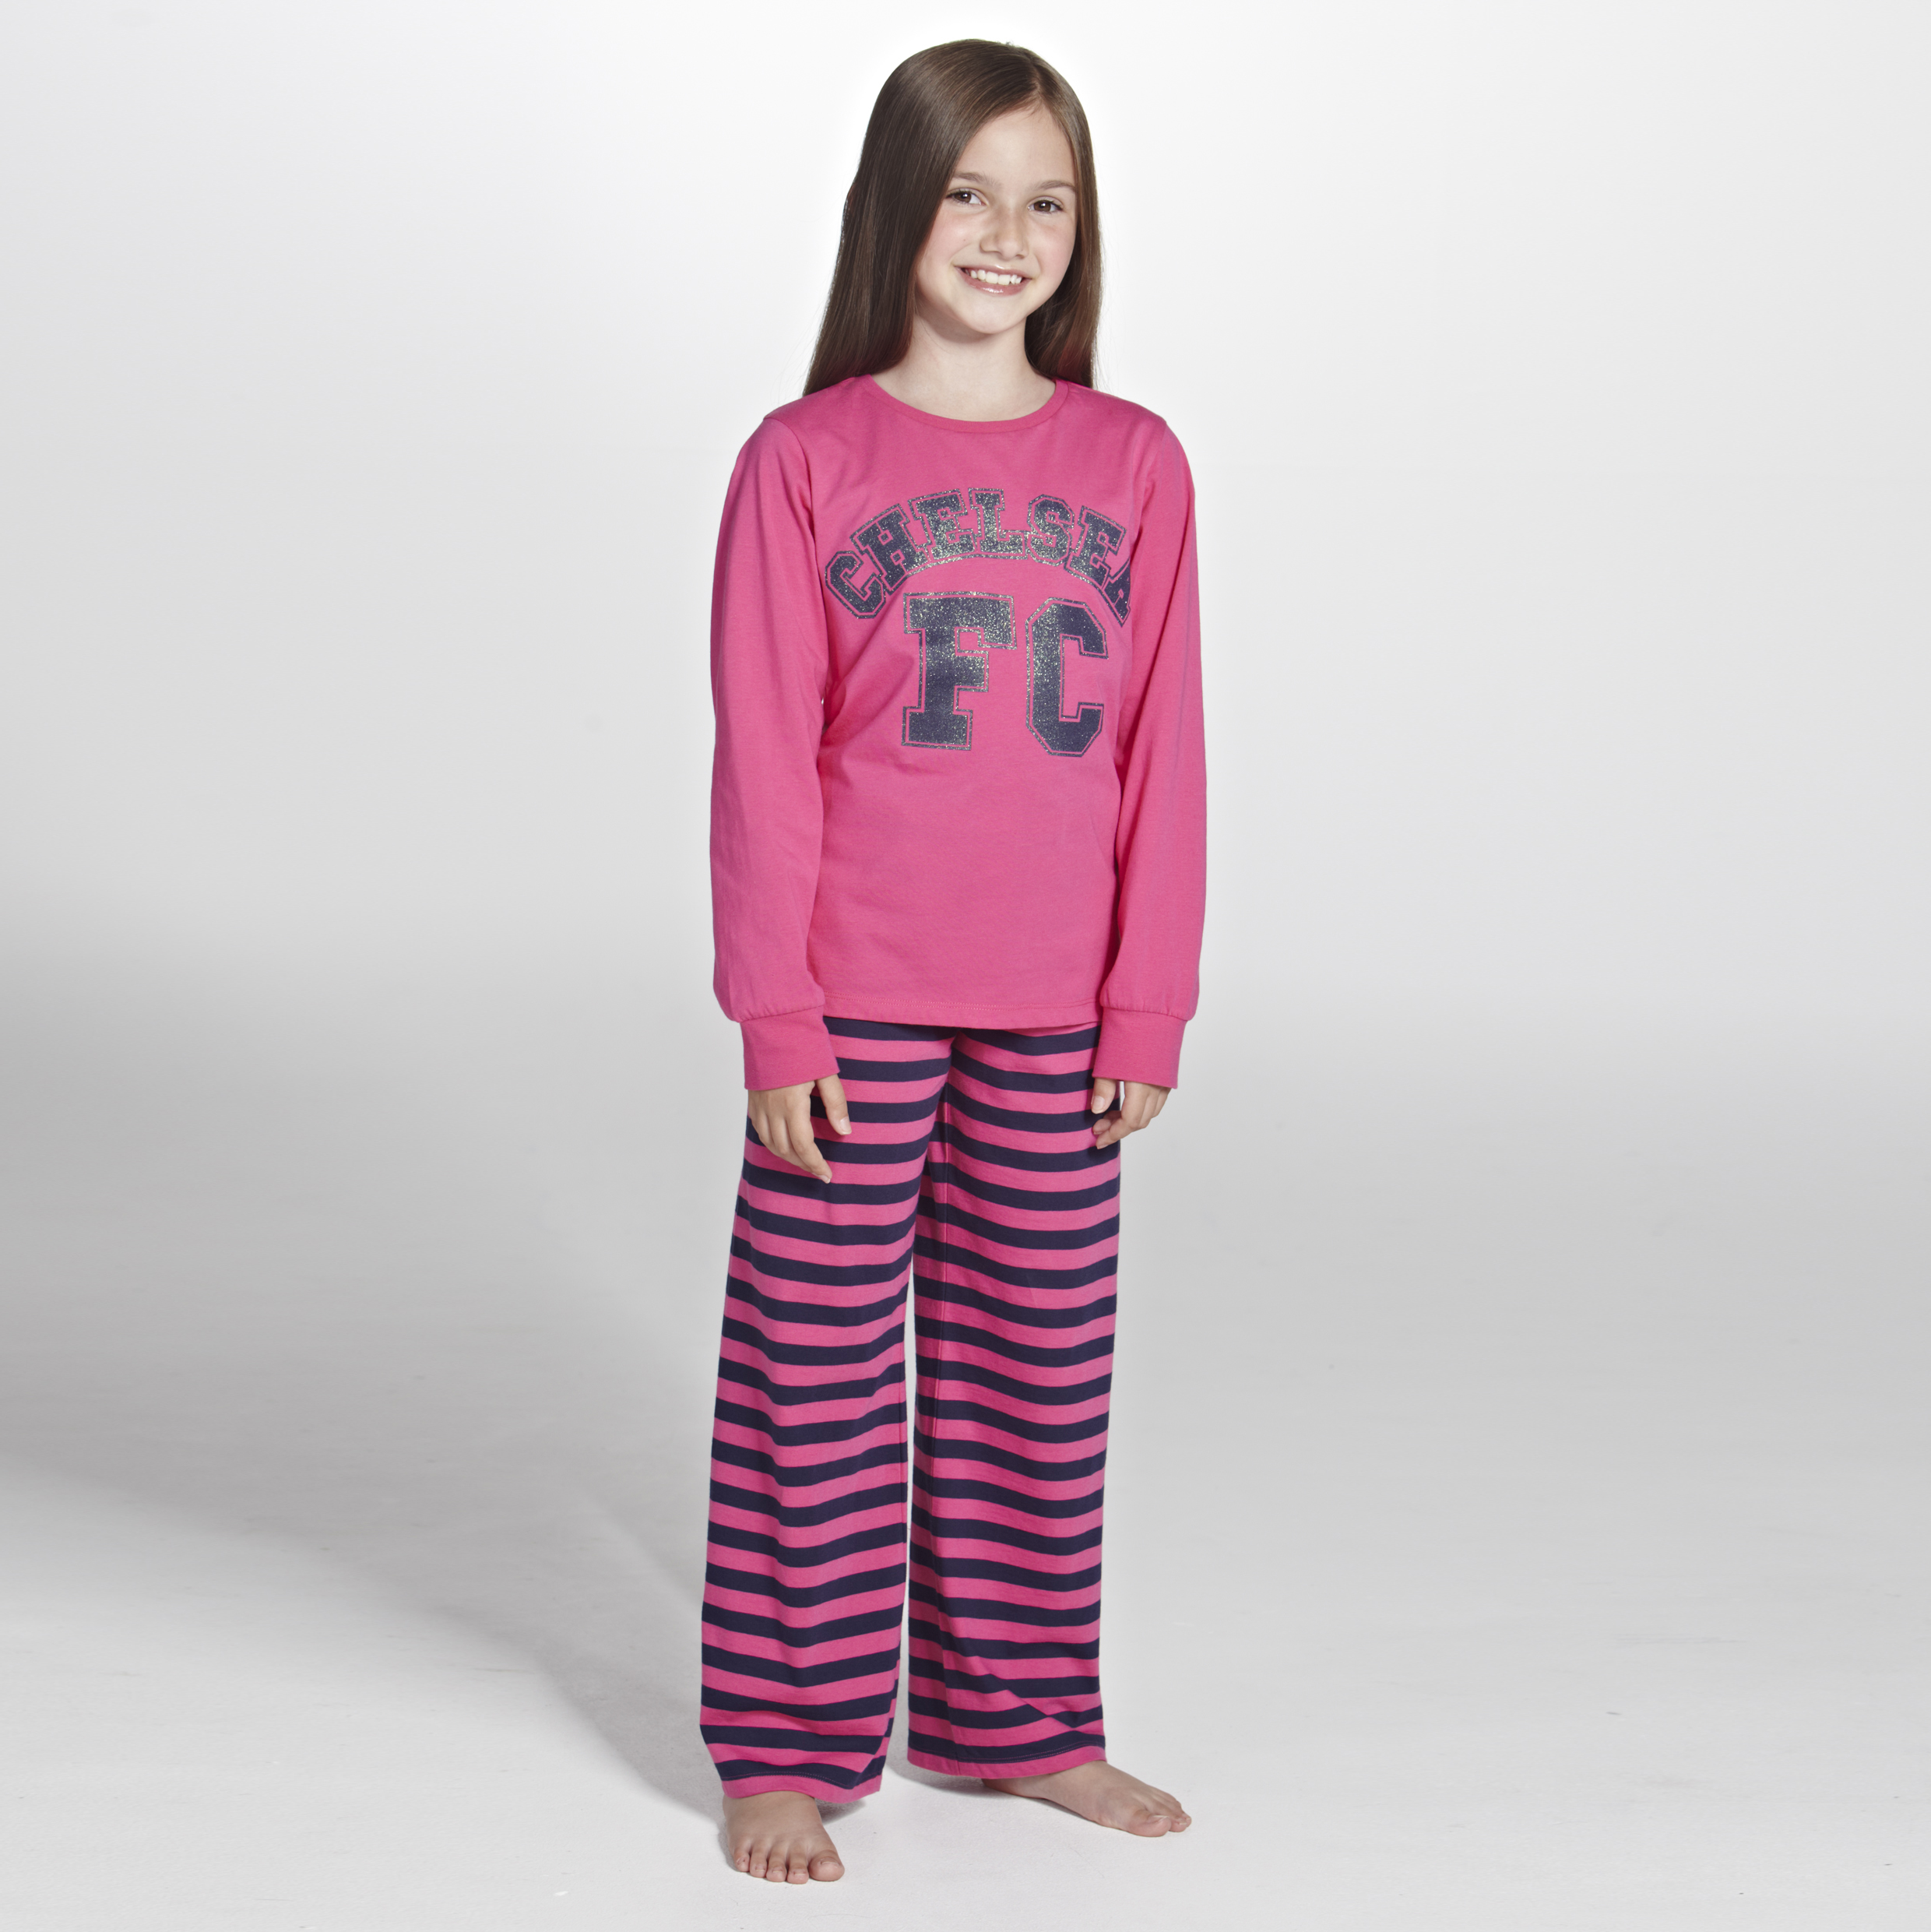 Chelsea Striped Snuggle Fit Pyjamas- Girls Pink